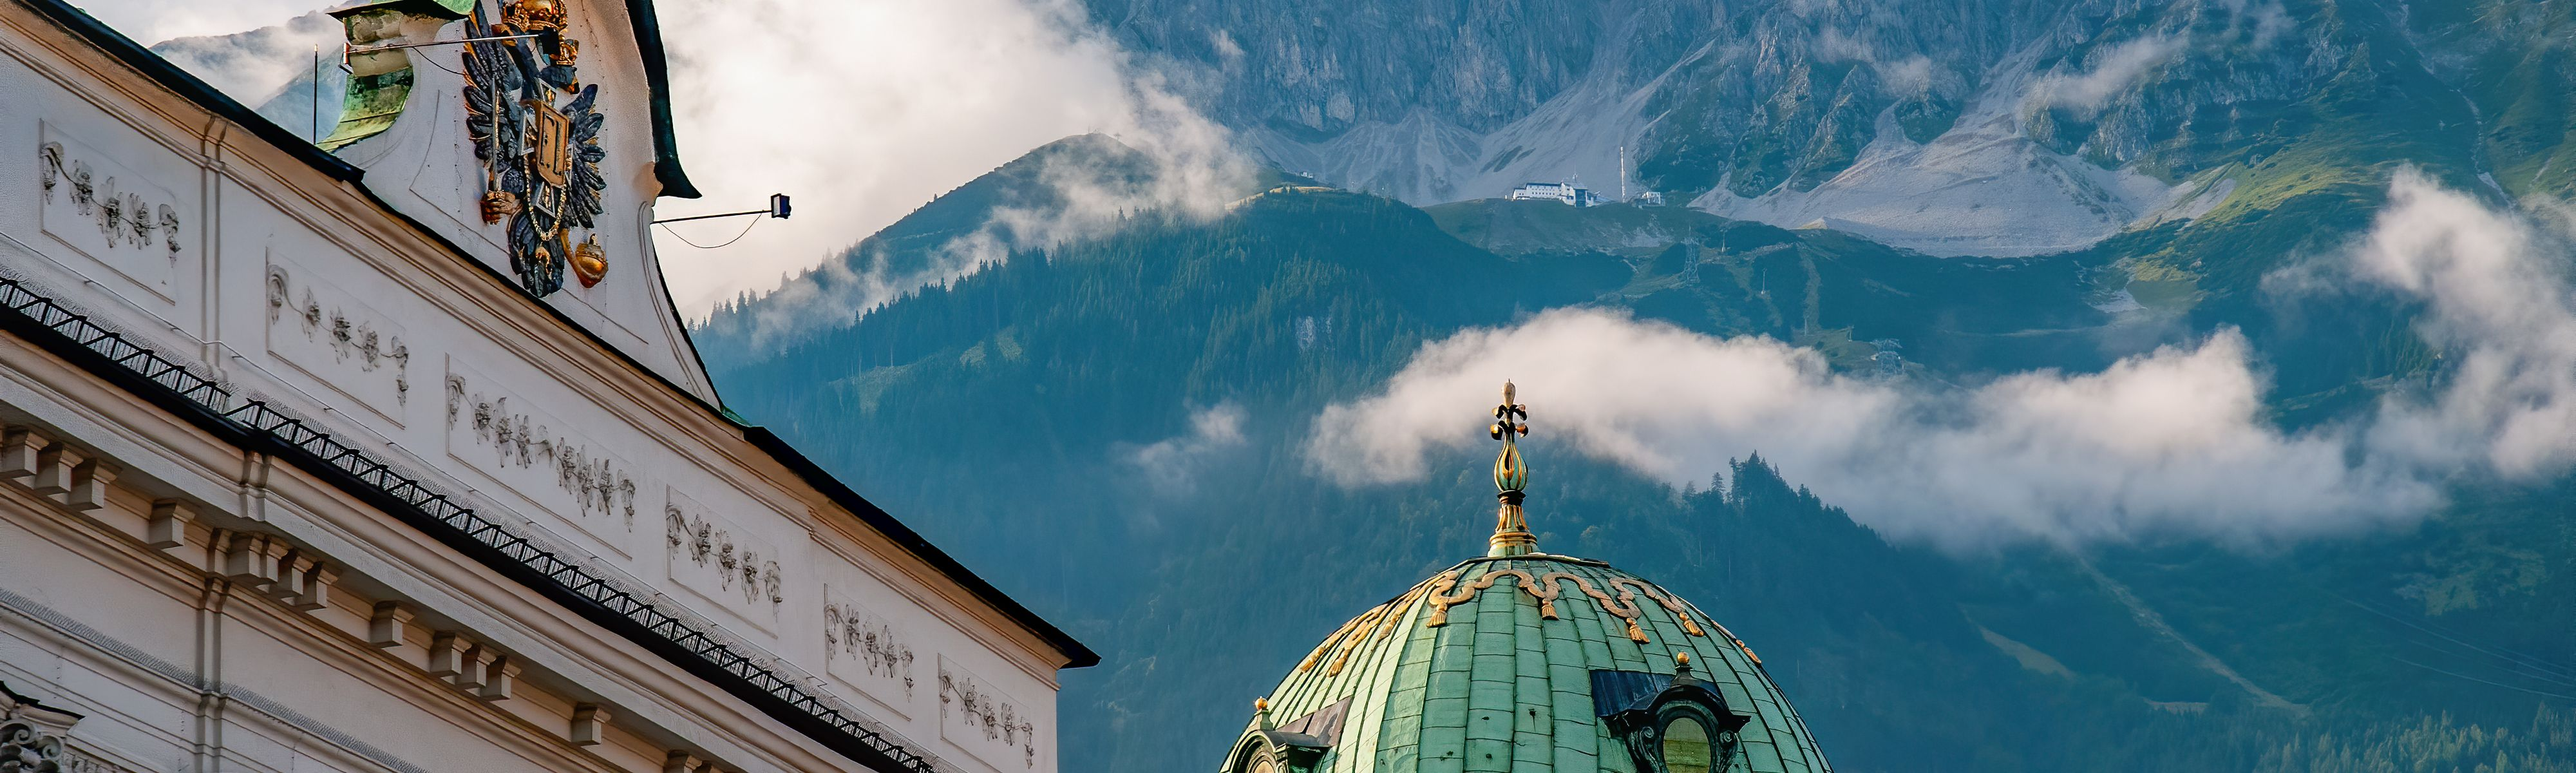 teal roofed heritage building at the alpine foothills in innsbruck austria